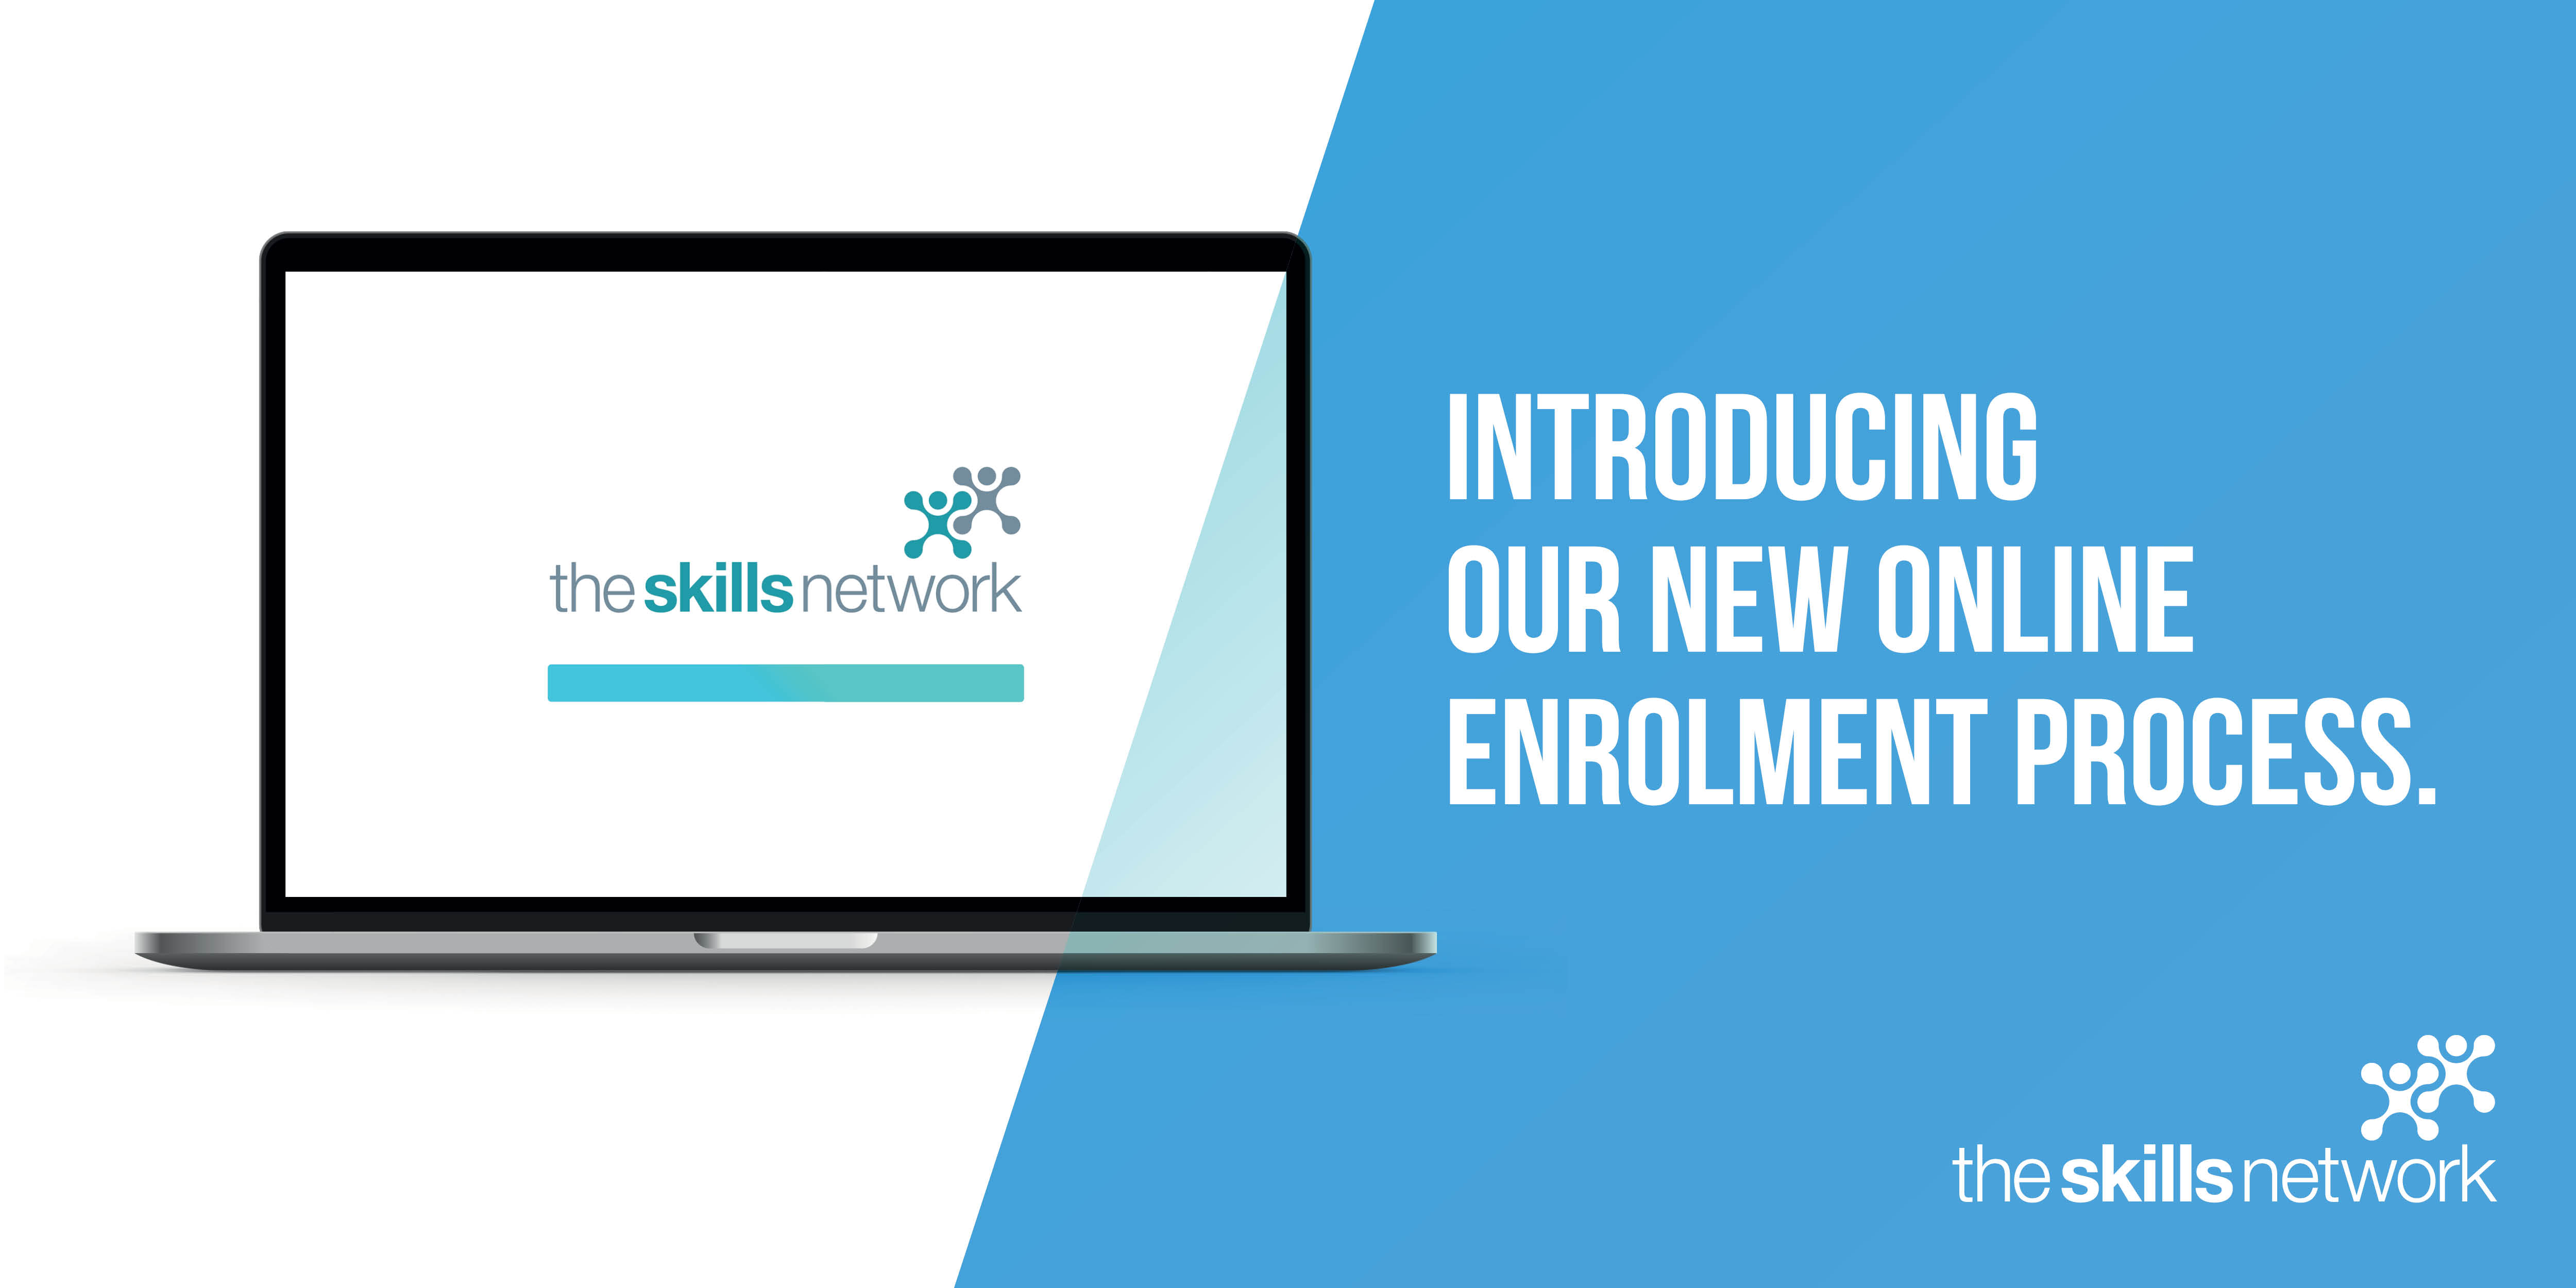 Continuing to put learners and partners first – The Skills Network introduces new online enrolment process